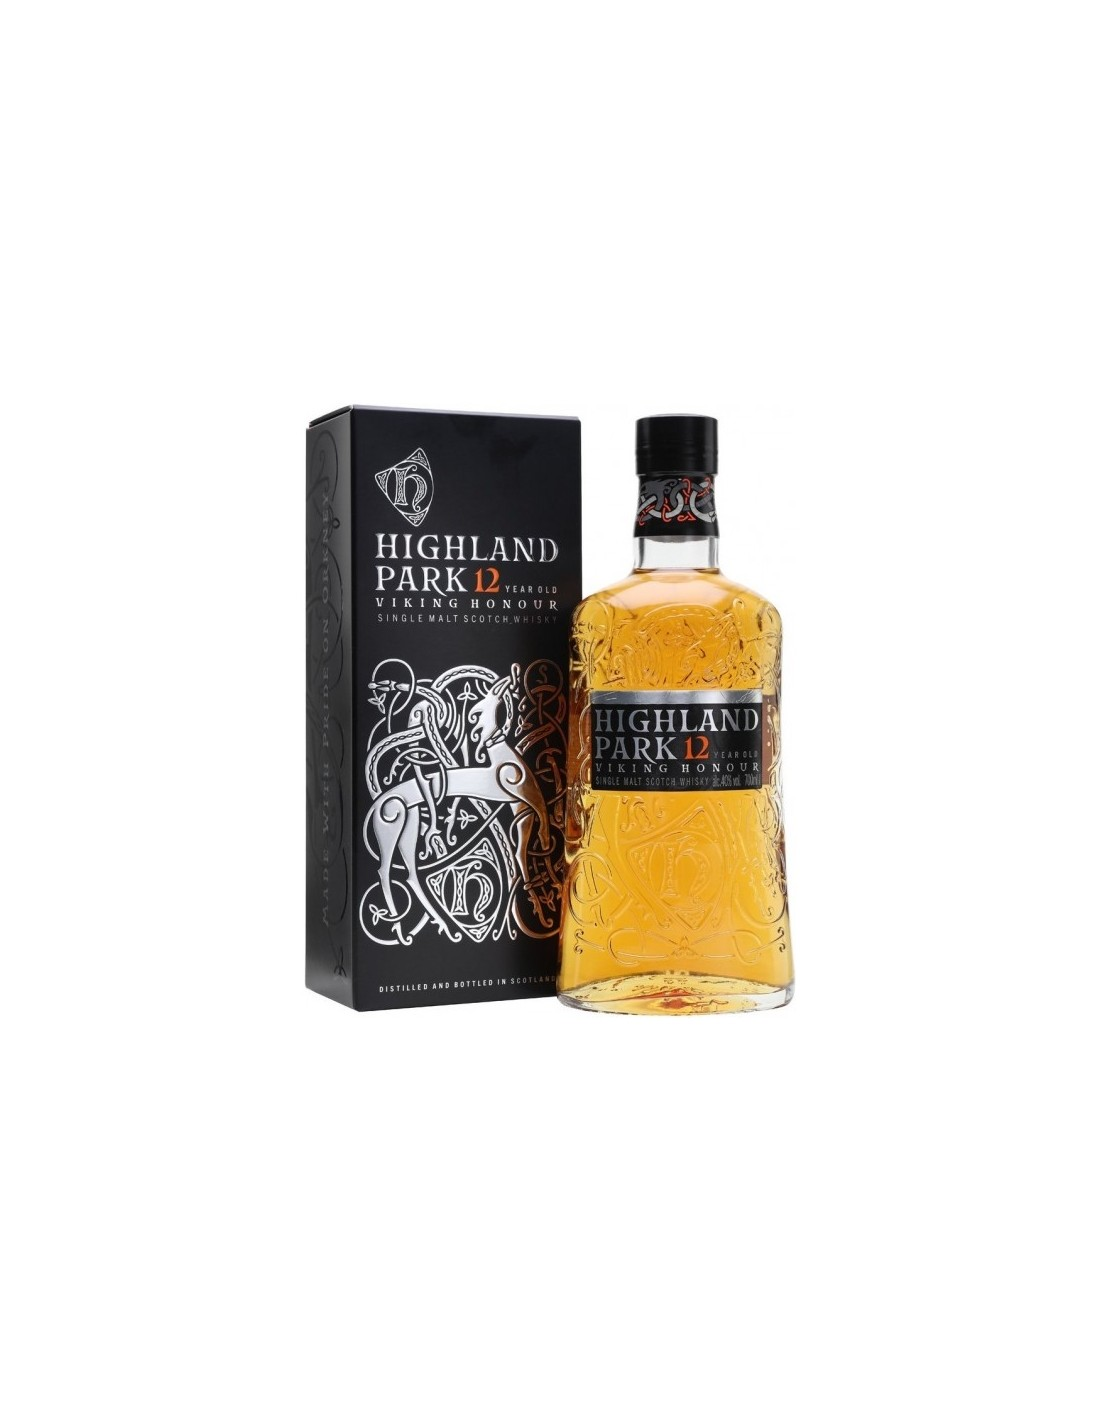 Whisky Highland Park, 12 ani, 40% alc., 0.7L, Scotia